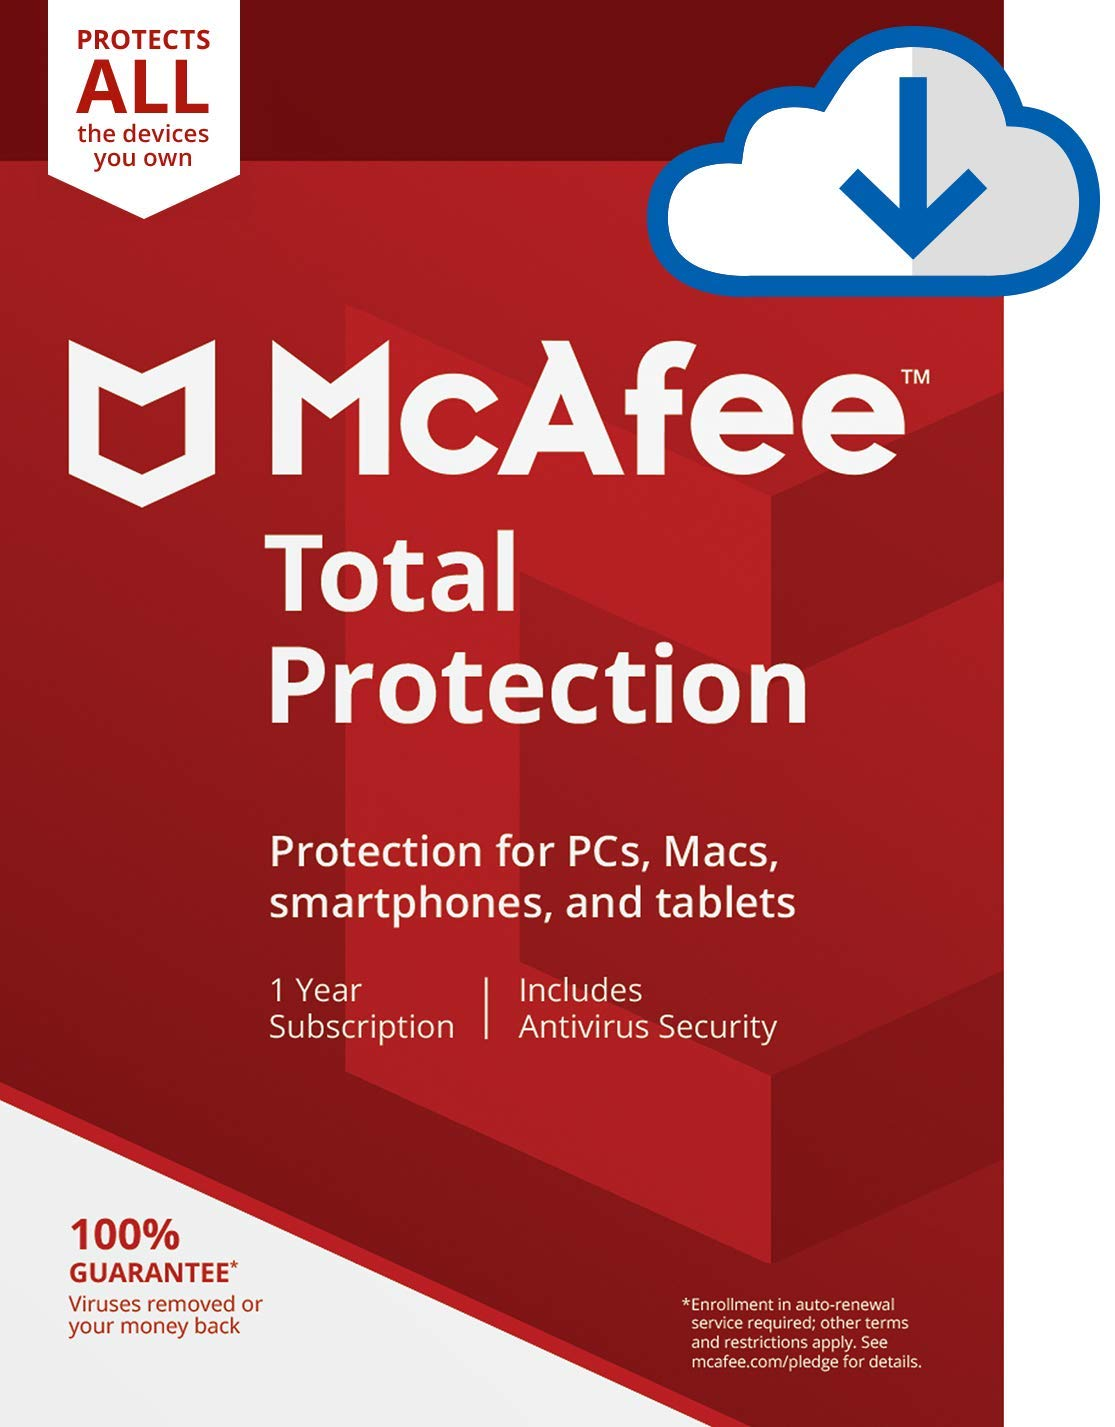 McAfee Total Protection|Antivirus| Internet Security| Unlimited Devices| 1 Year Subscription| PC/Mac Download|2019 Ready by McAfee